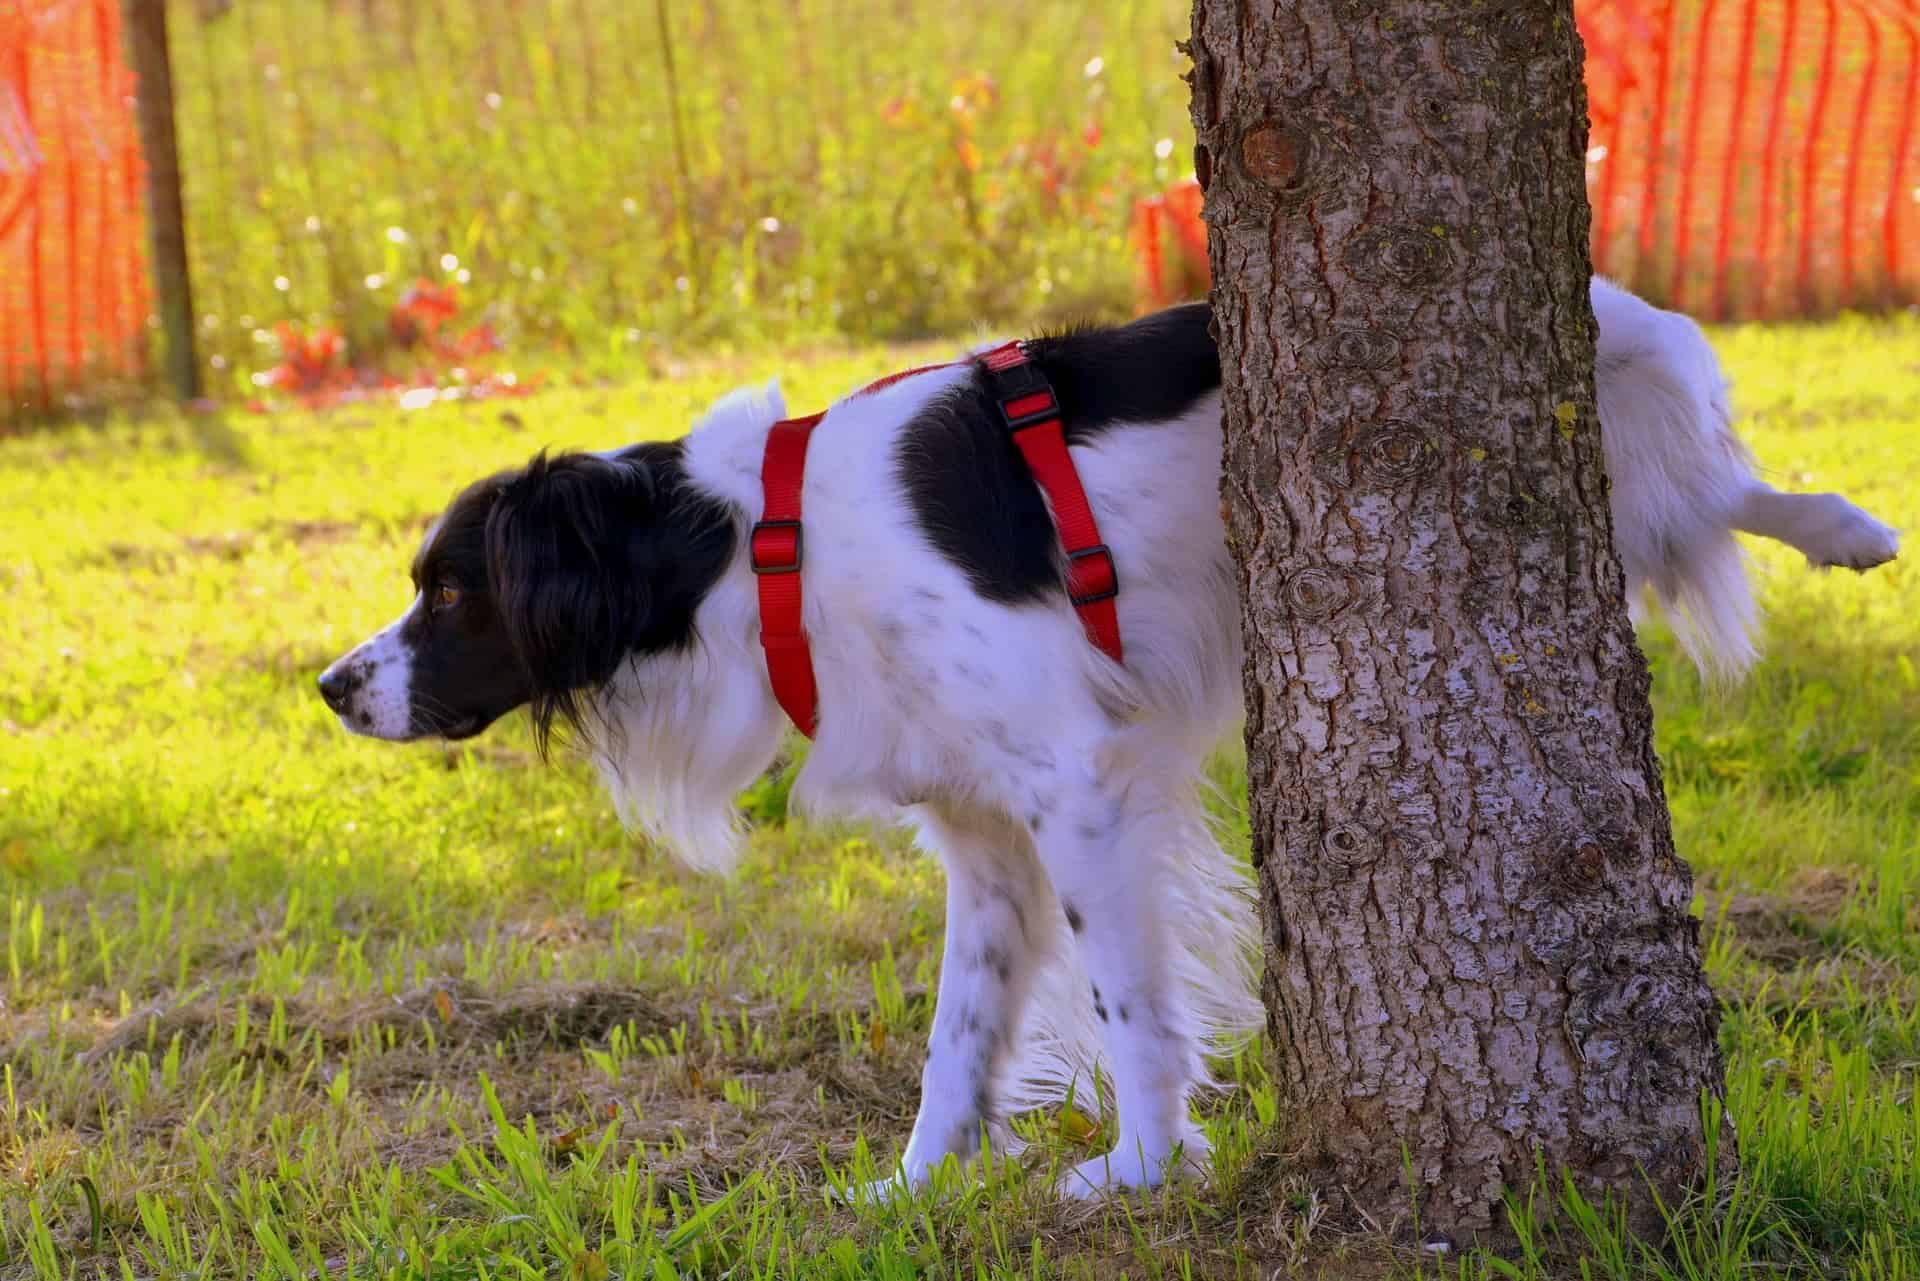 When Dogs Pee Blood: What Are Its Causes And Treatment?